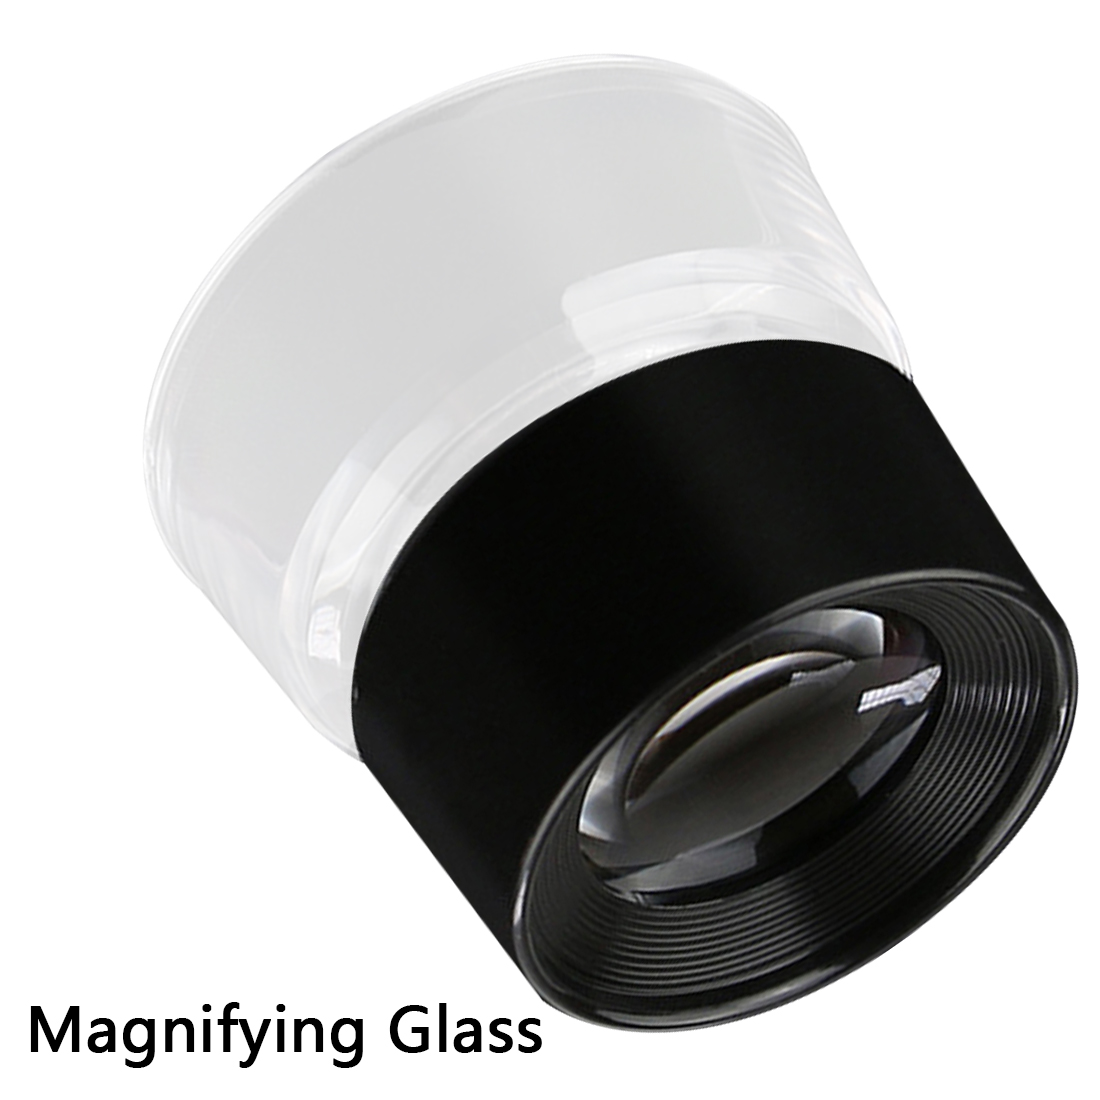 Portable Magnification 55x40mm 10X Magnifying Glass Magnifiers Microscope For Reading Jeweler Stamp Antique